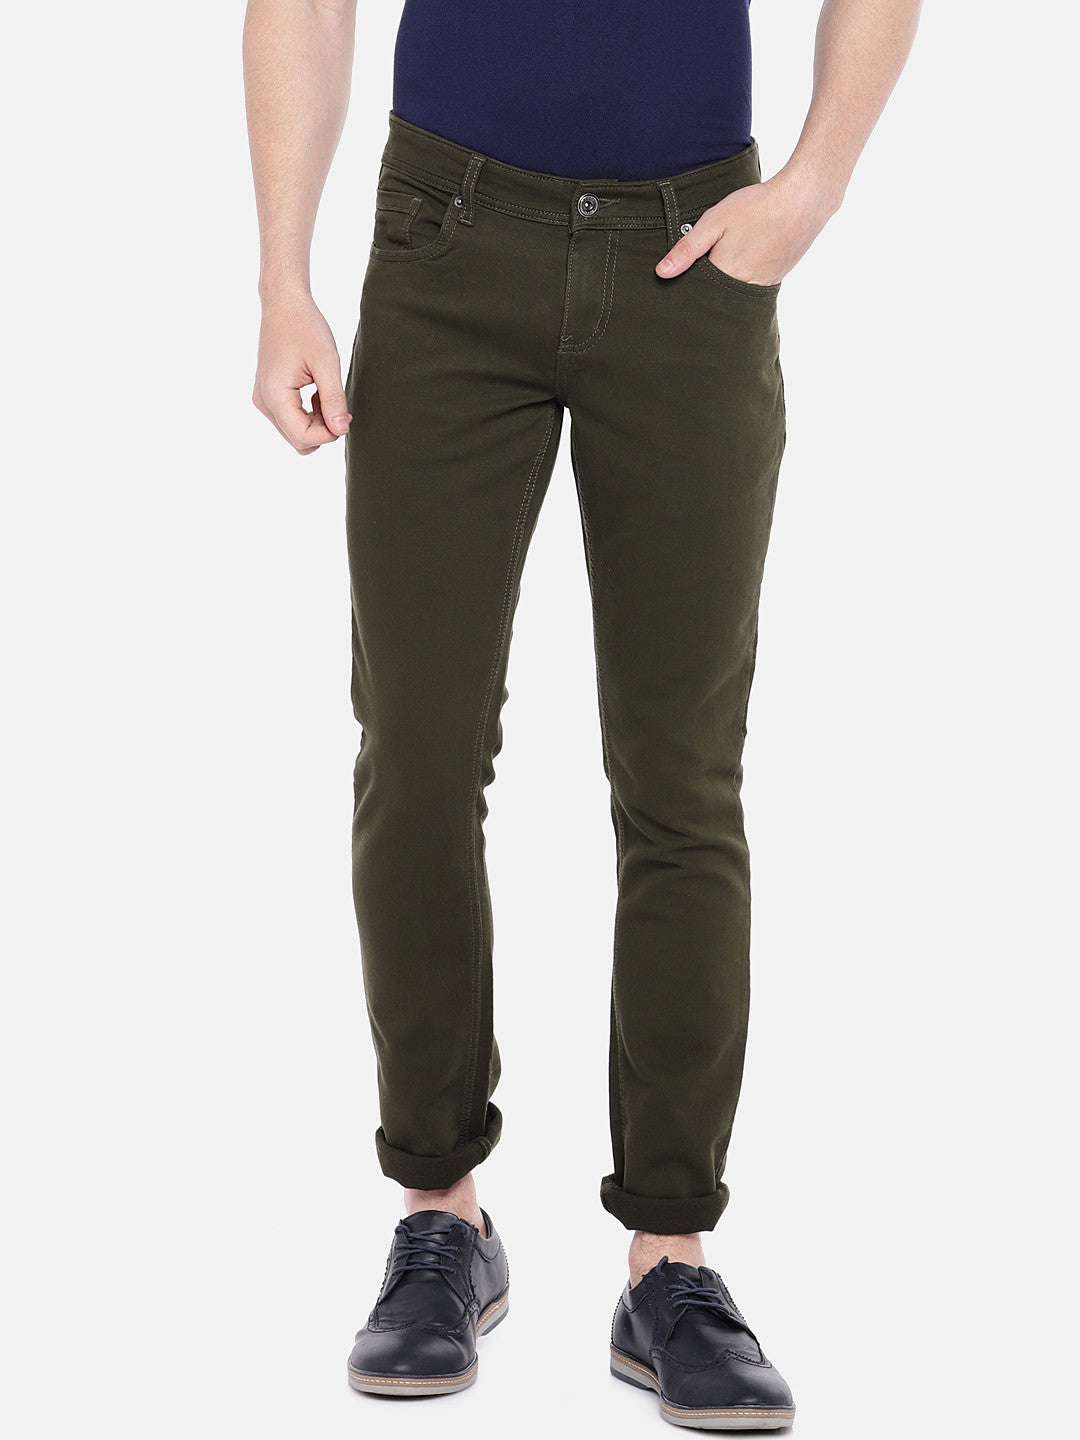 Olive Green Regular Fit Solid Chinos-1